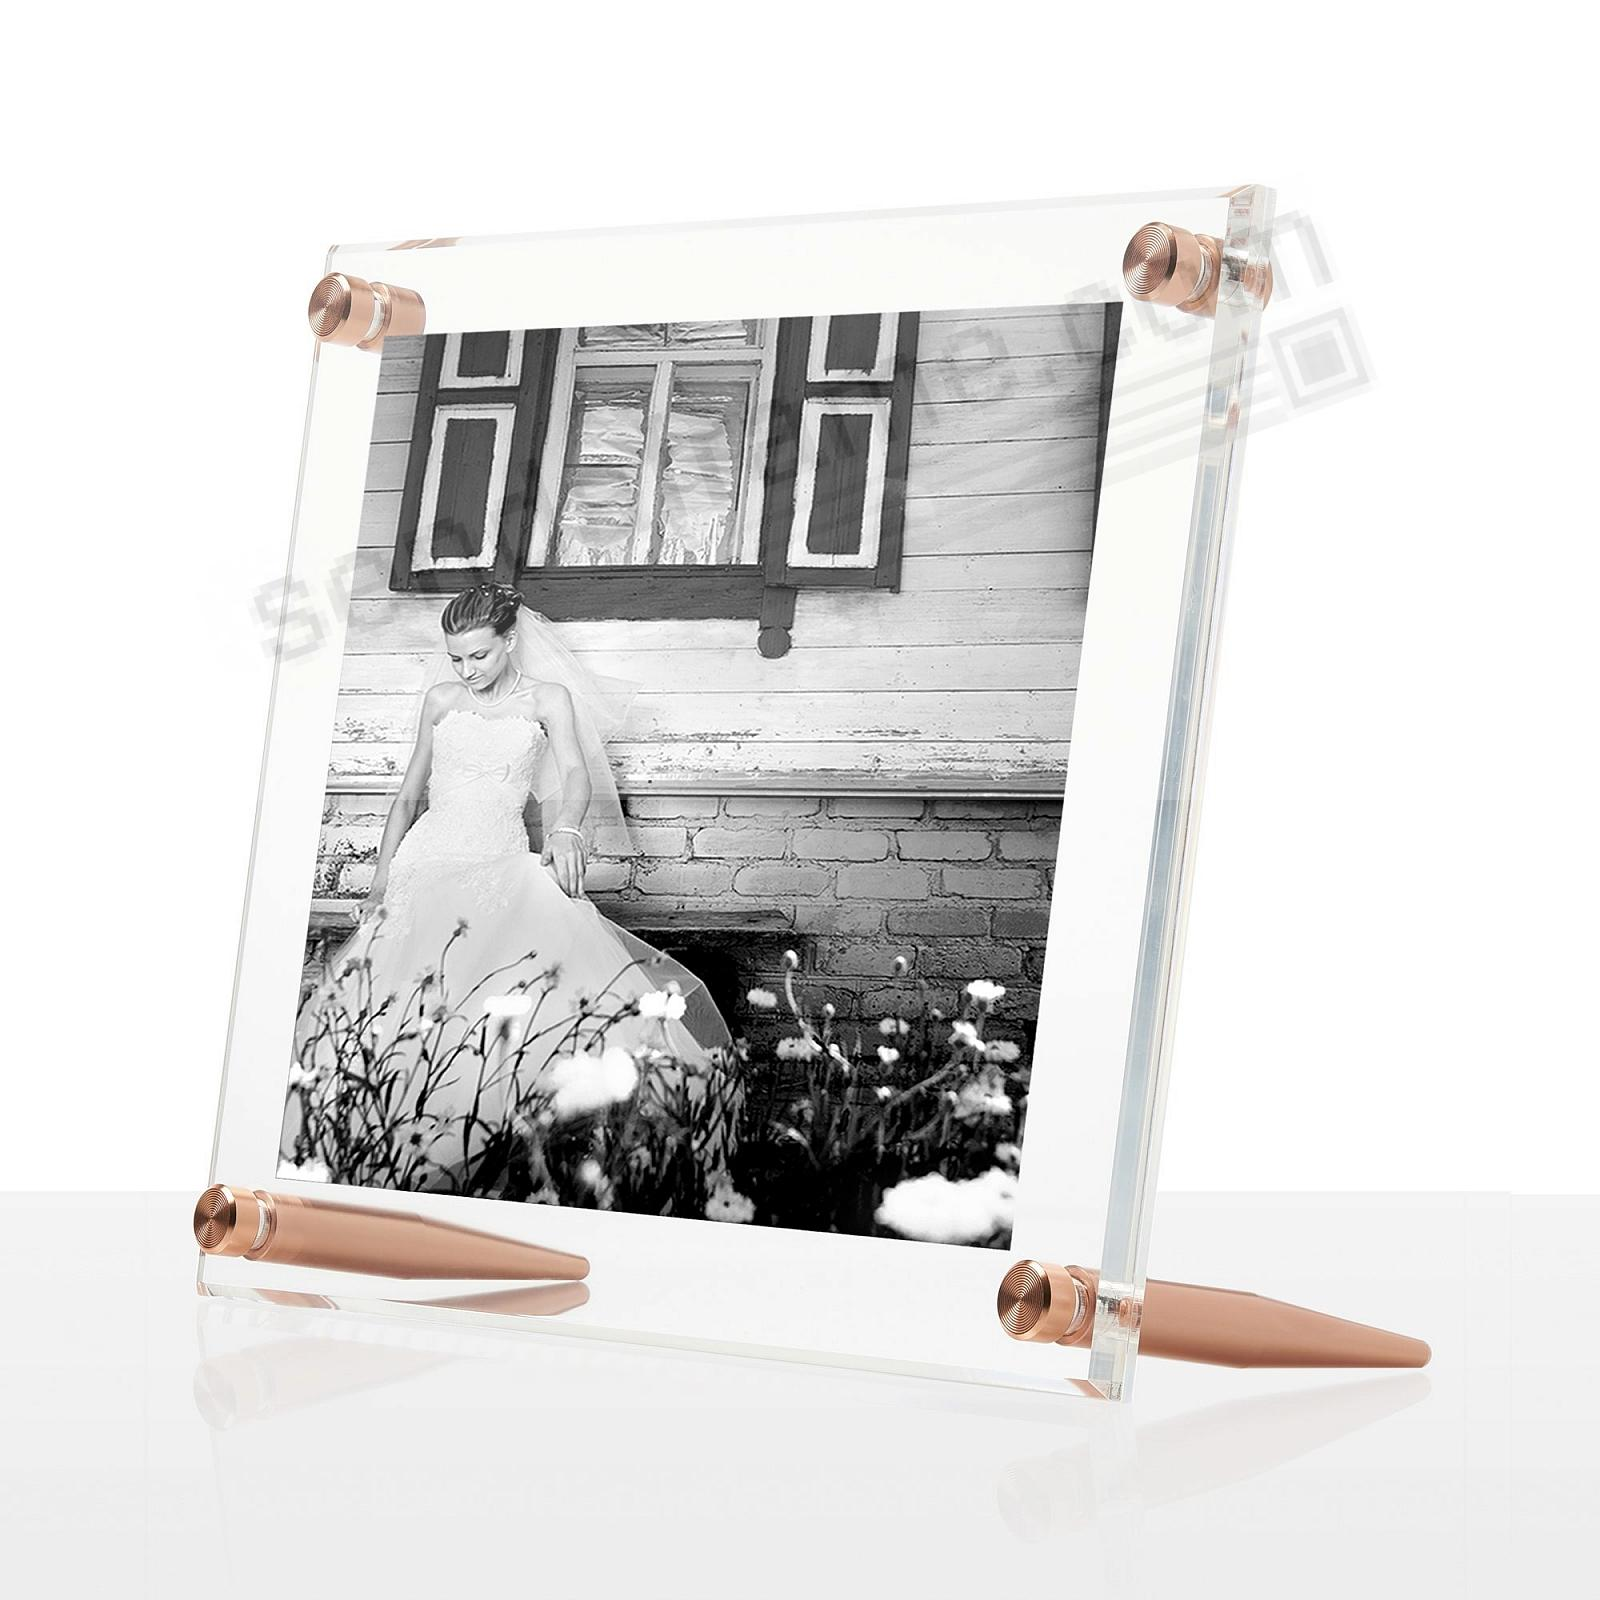 ACRYLIC BEVEL FLOAT CLEAR/Rose-Gold Frame 9x7/5x7 by Wexel Art®